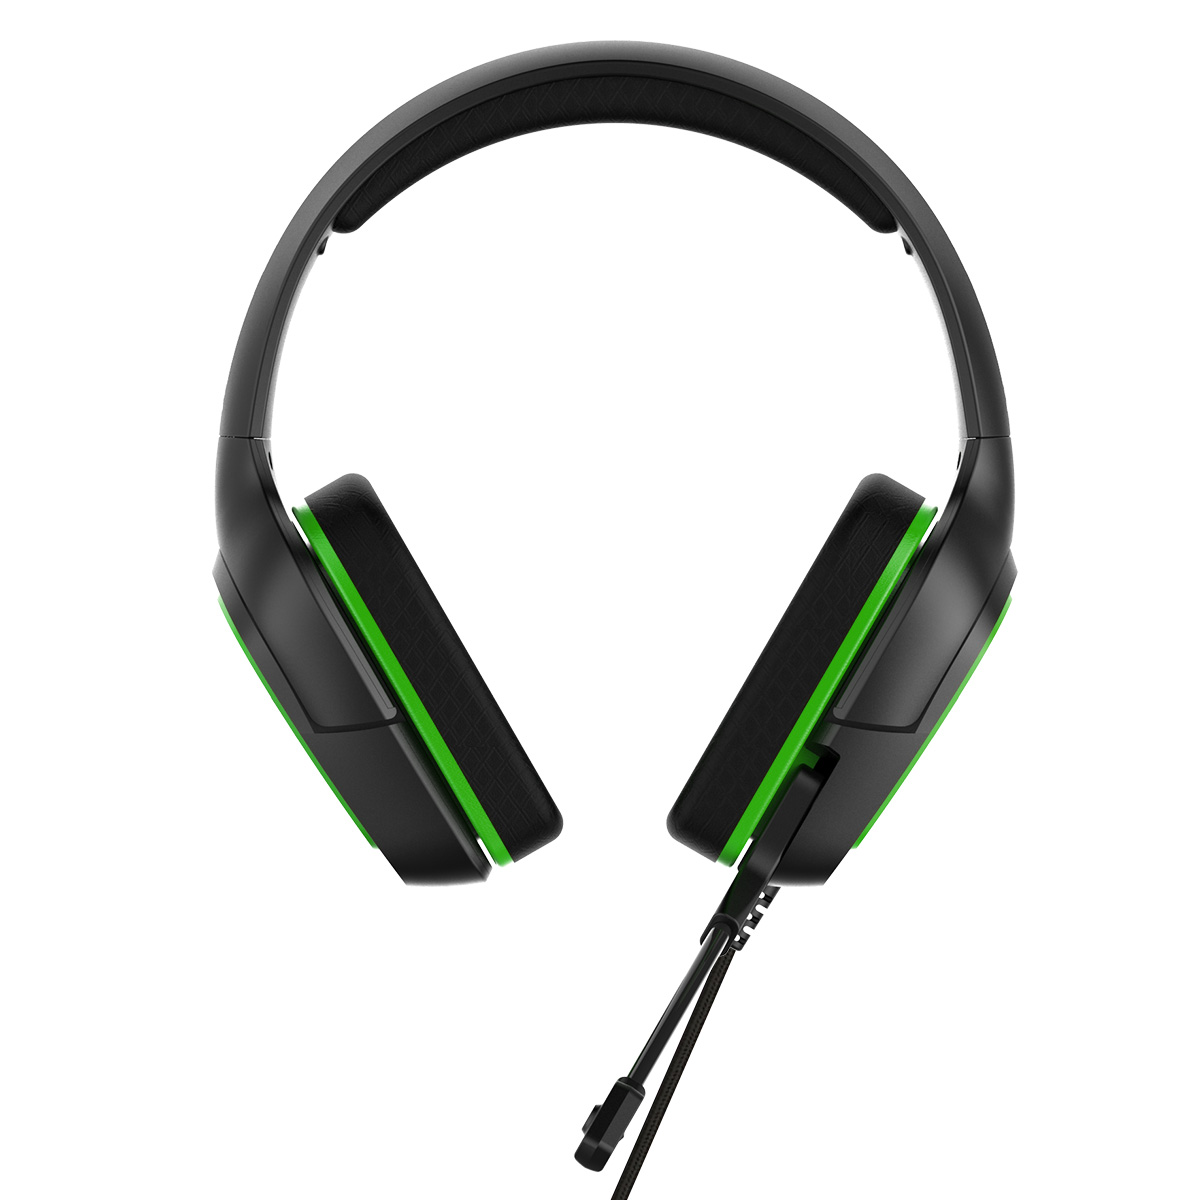 Ipega-R006G headset with headset